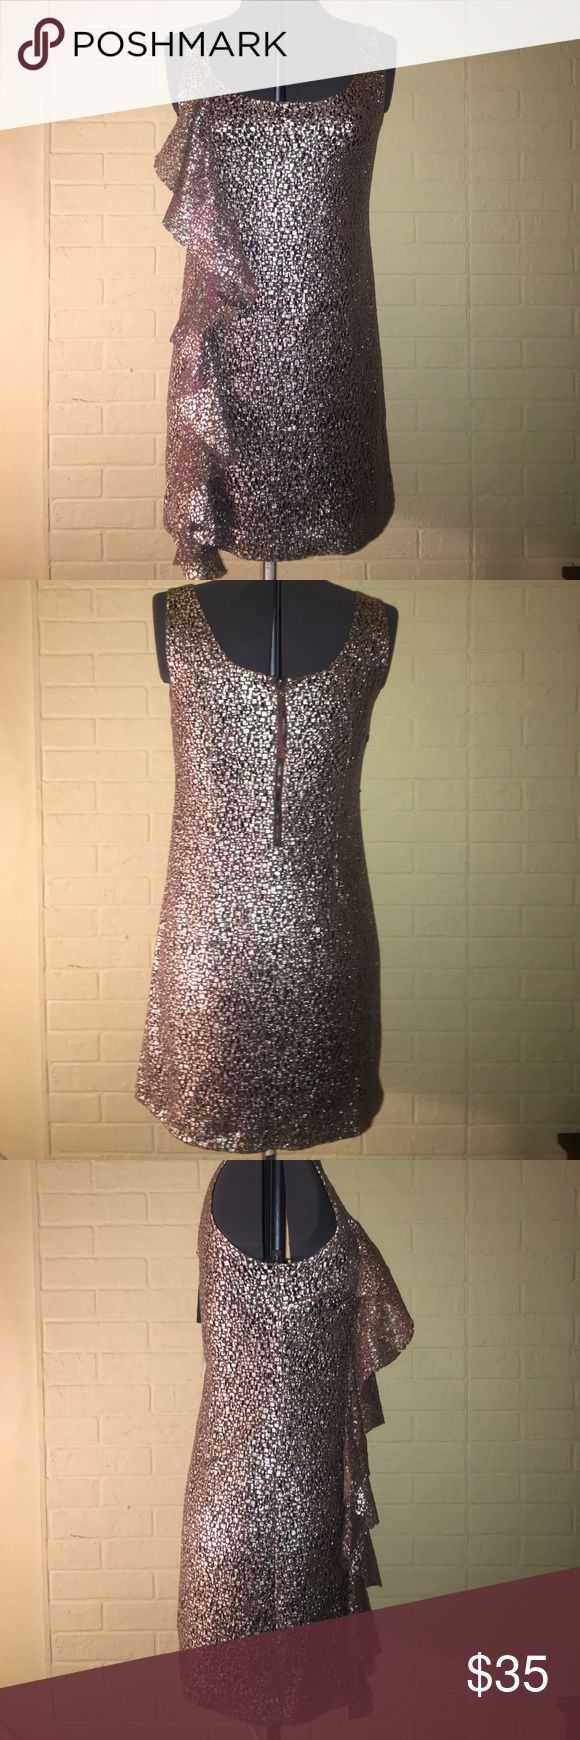 GUESS Ruffled Metallic Party Dress . Size 9 GUESS Ruffled Metallic Party Dress . Gold and Silver. Ruffle detail along one side. Zipper closure in back. Lined. Worn one time. Size 9. *great for a birthday or new years eve ! * Guess Dresses Mini